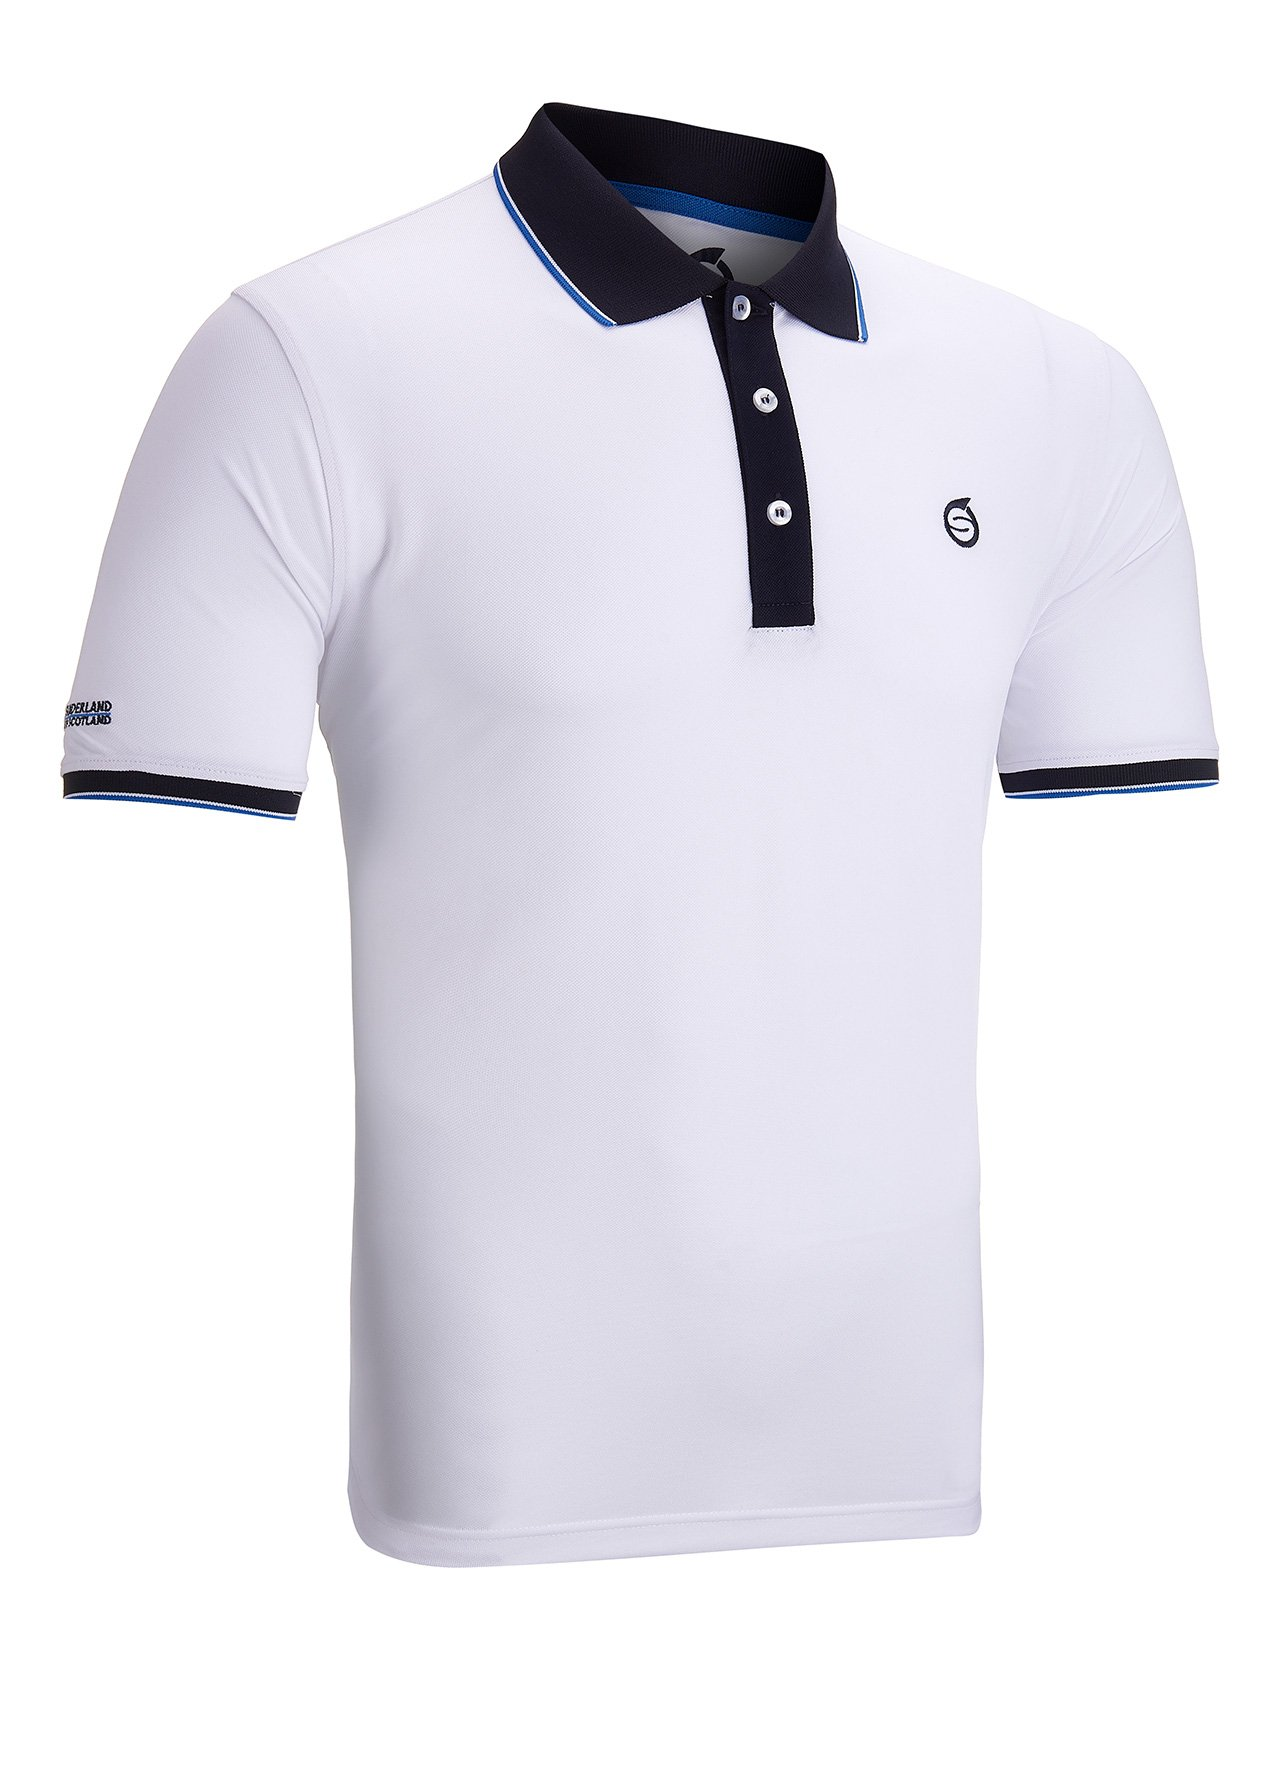 Sunderland classic golf polo shirt white medium ebay